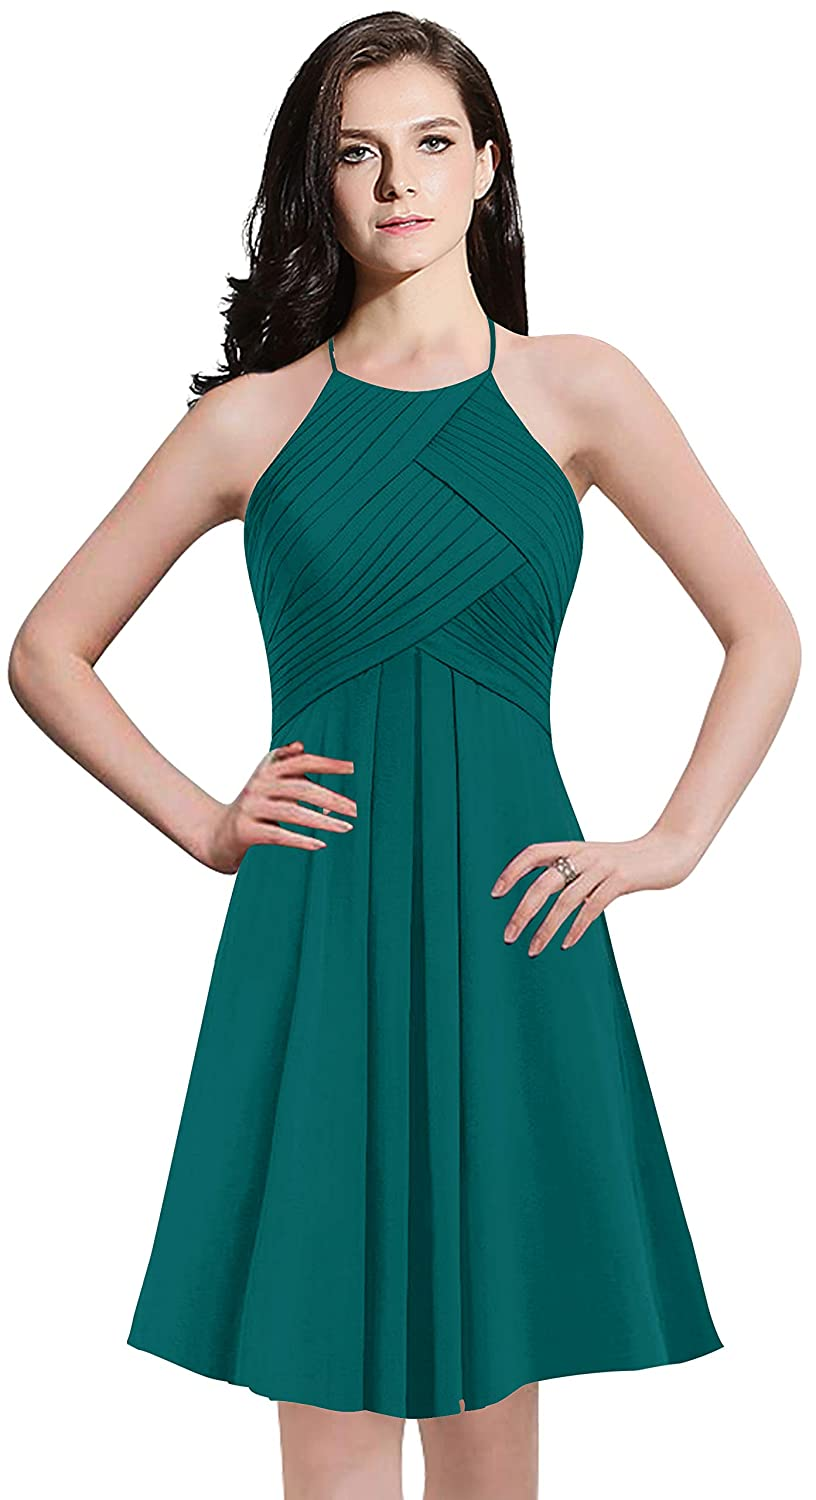 ThaliaDress Womens Chiffon Short Halter Bridesmaid Dress Cocktail Party Evening Gown T073LF